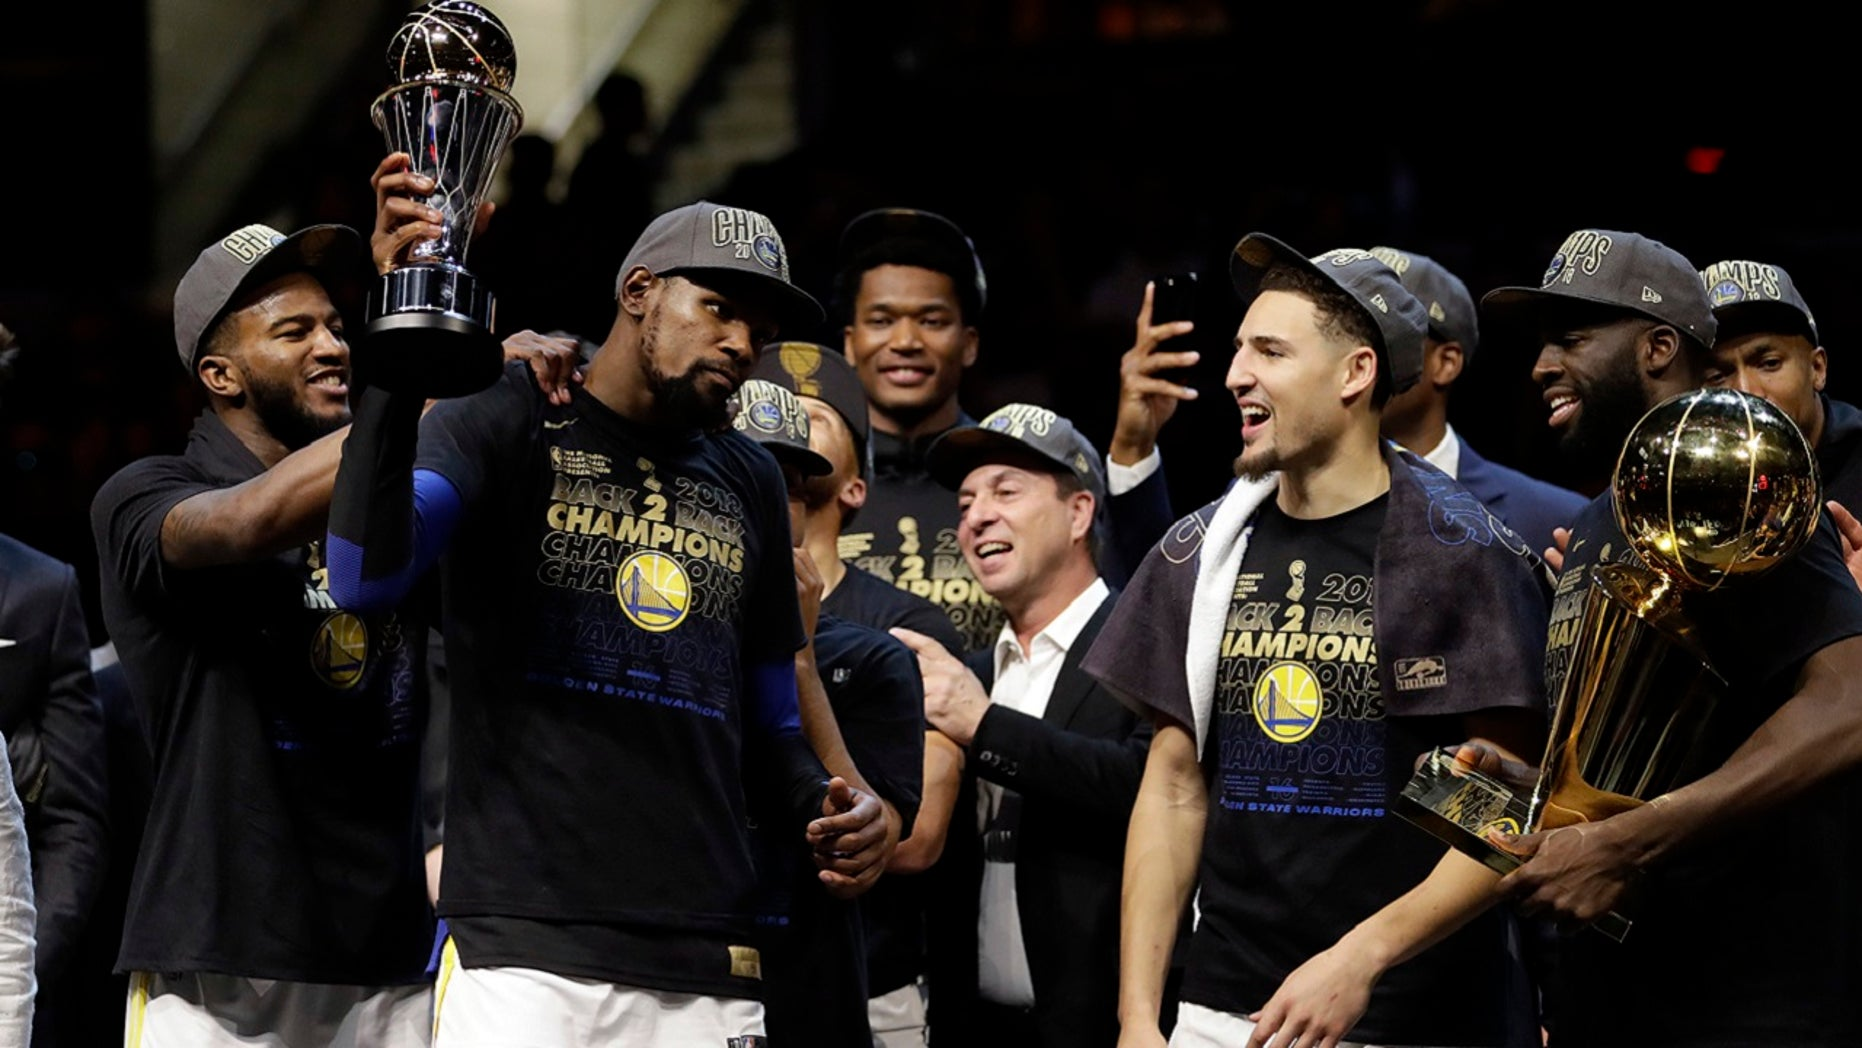 Golden State Warriors' Kevin Durant, second from left, celebrates after the Warriors defeated the Cleveland Cavaliers 108-85 in Game 4 of basketball's NBA Finals to win the NBA championship, Friday, June 8, 2018, in Cleveland.